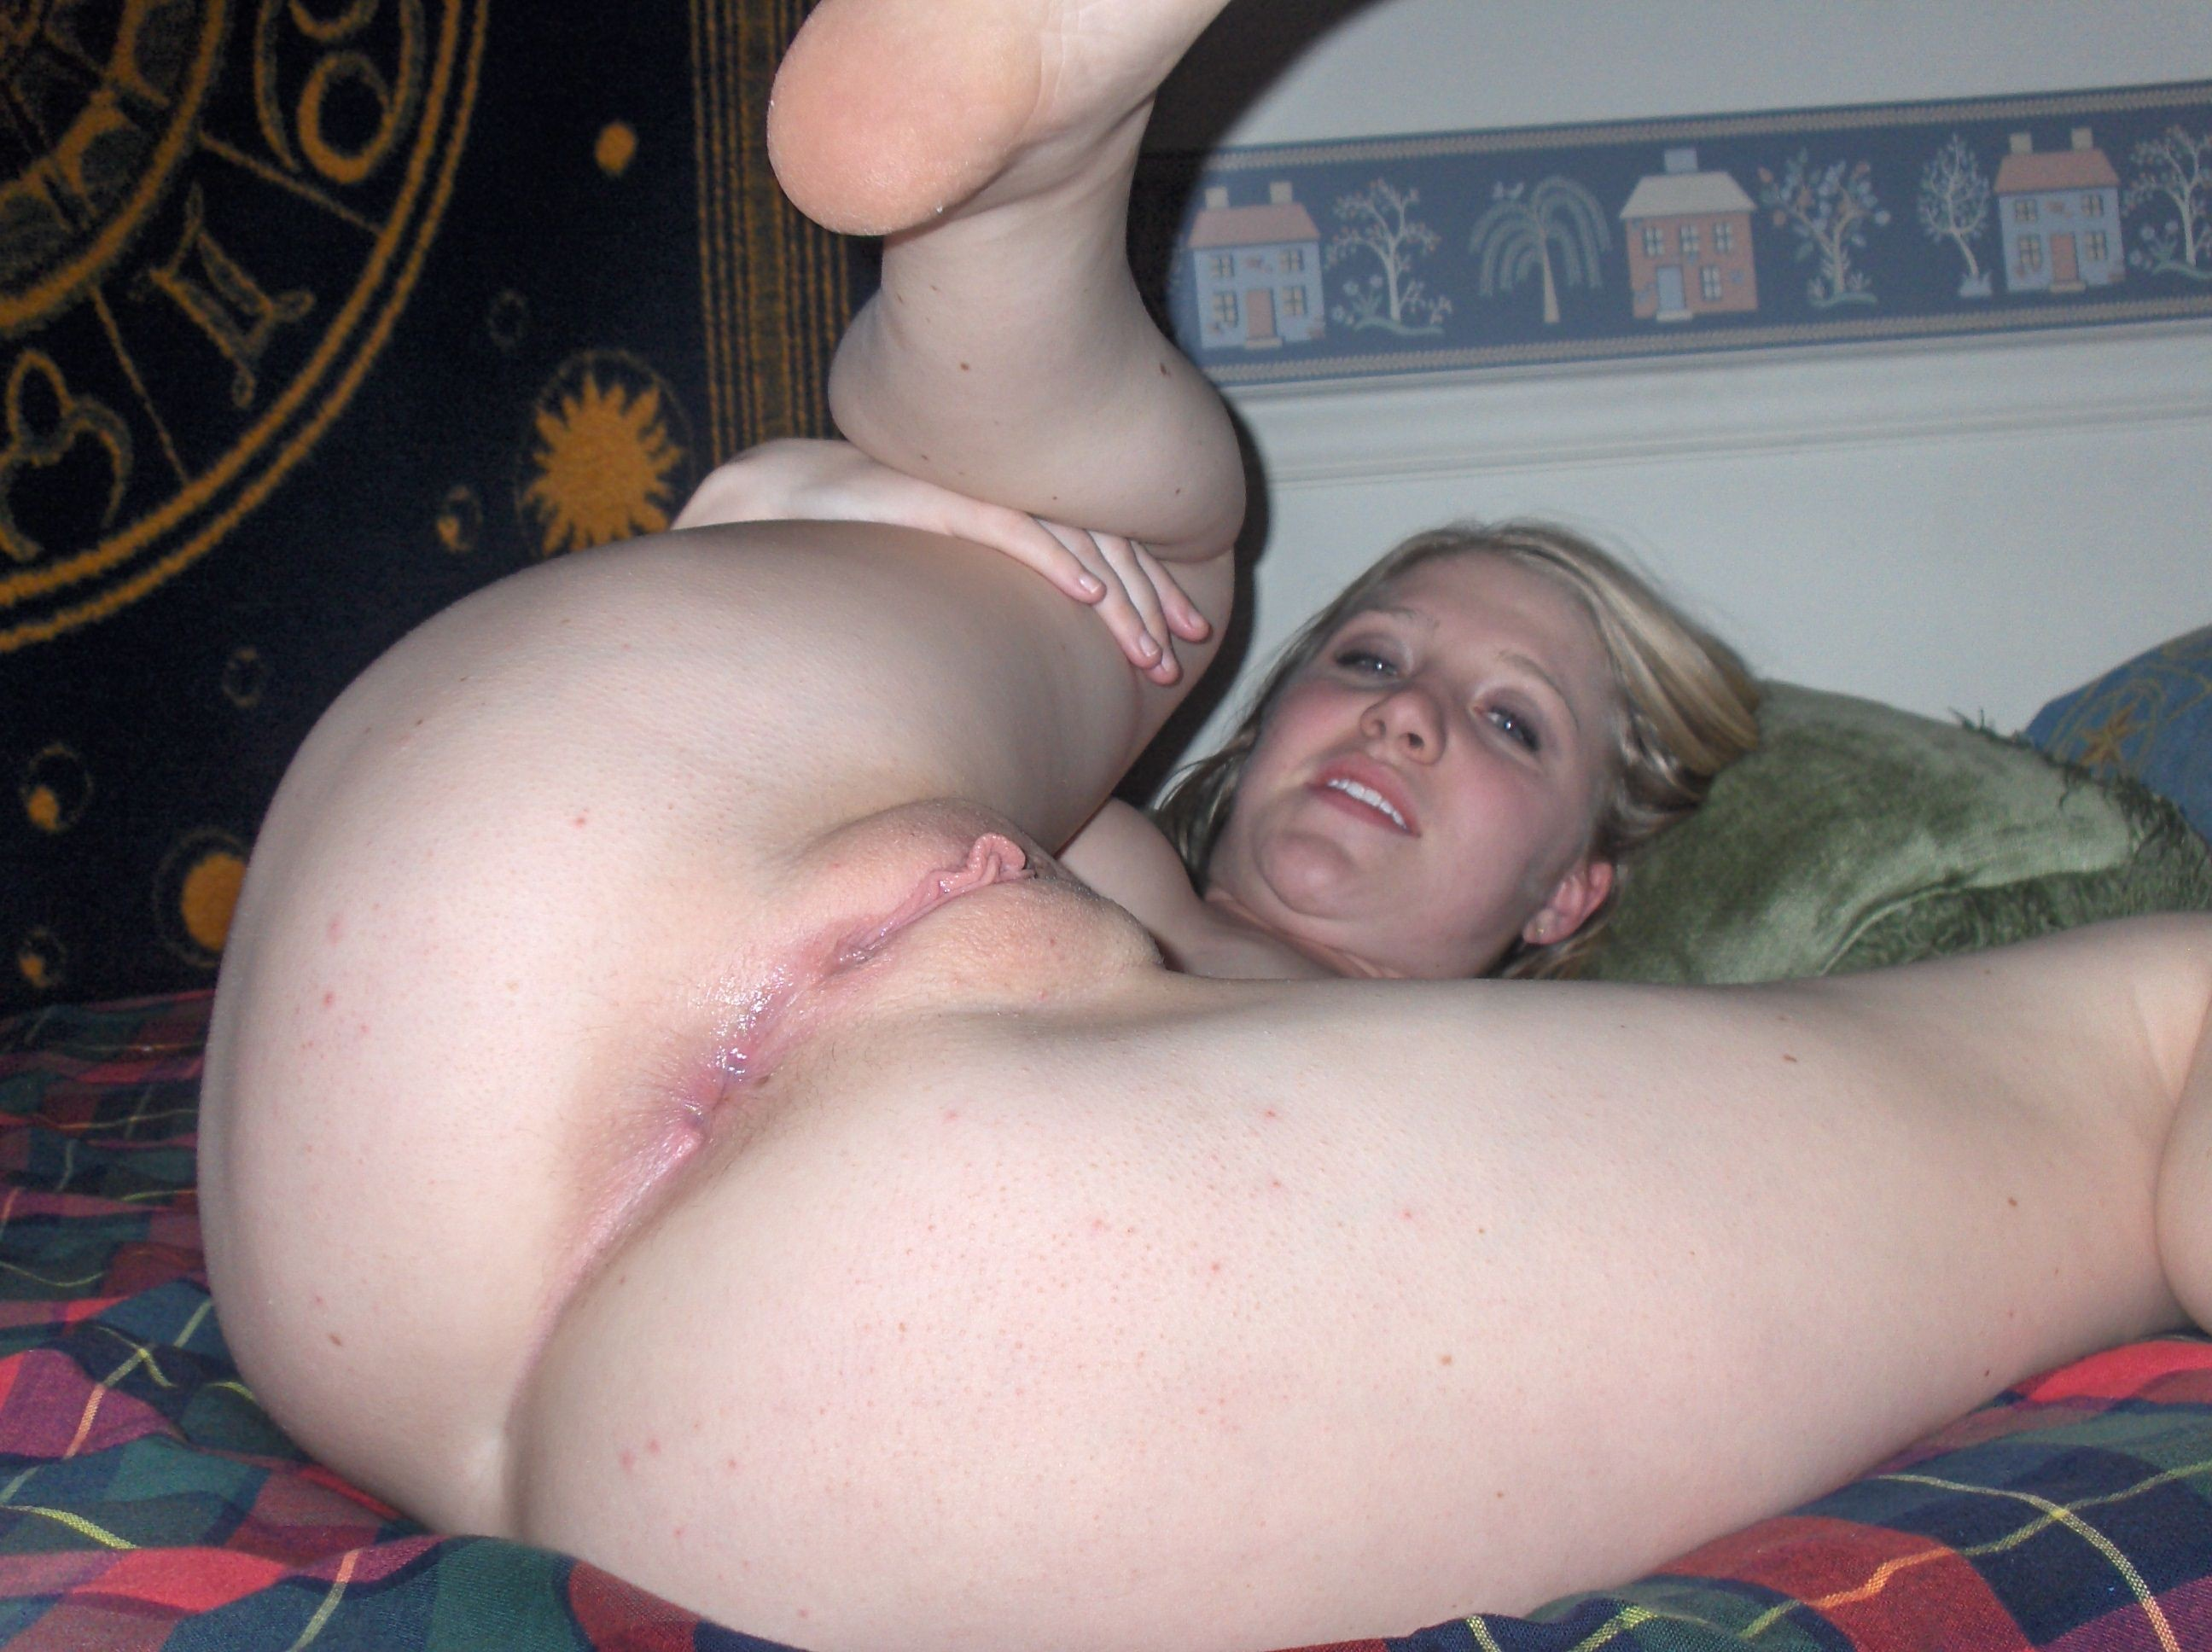 Slut legs spread